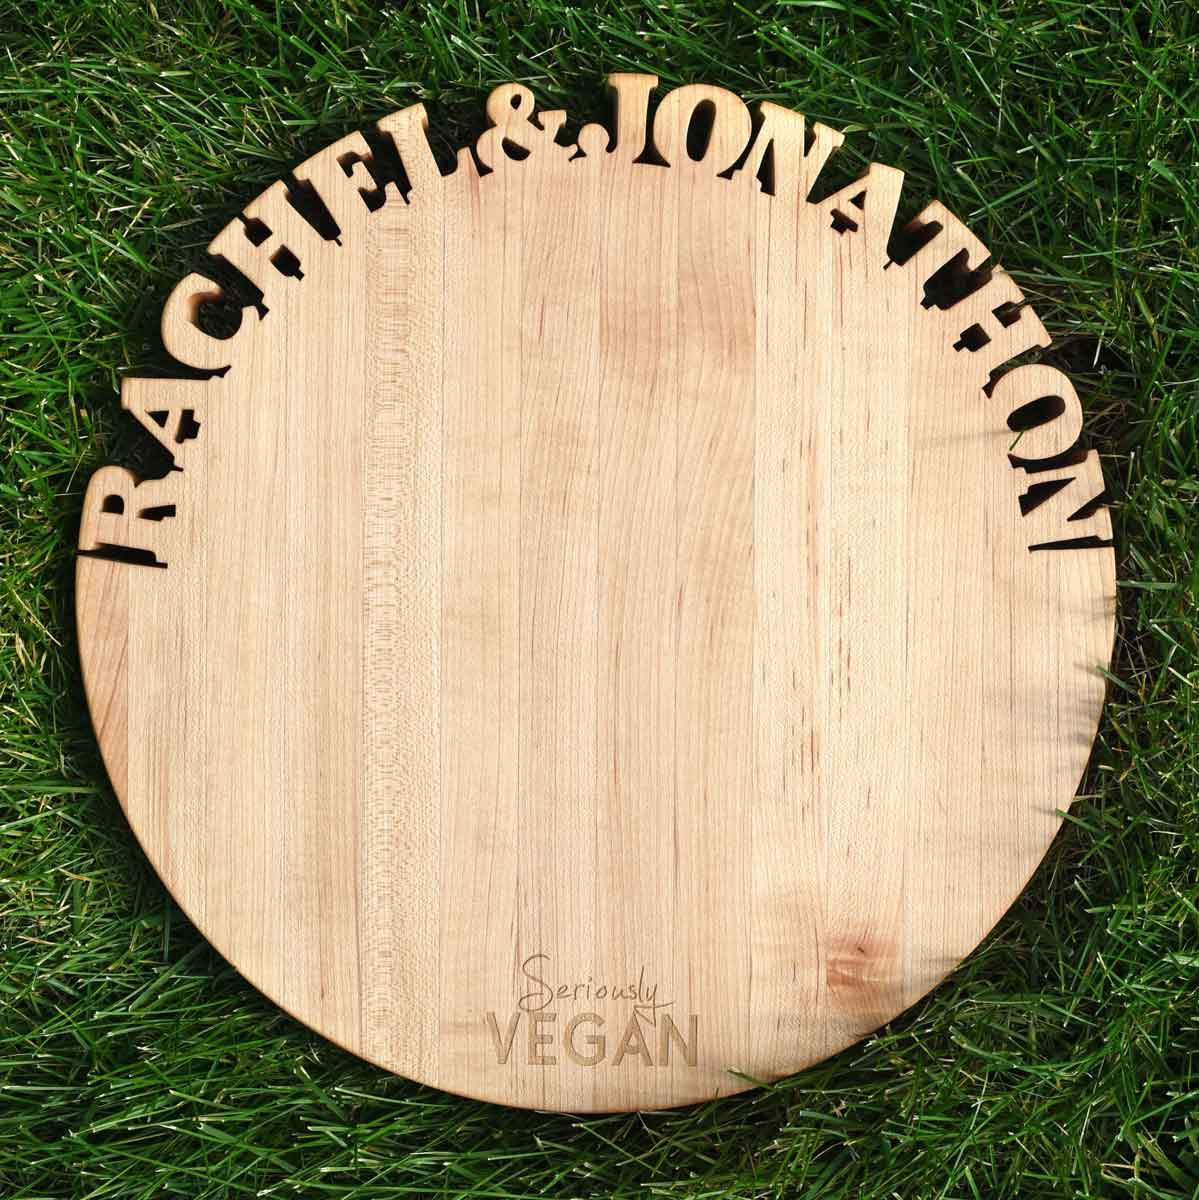 vegan products - custom cutting boards